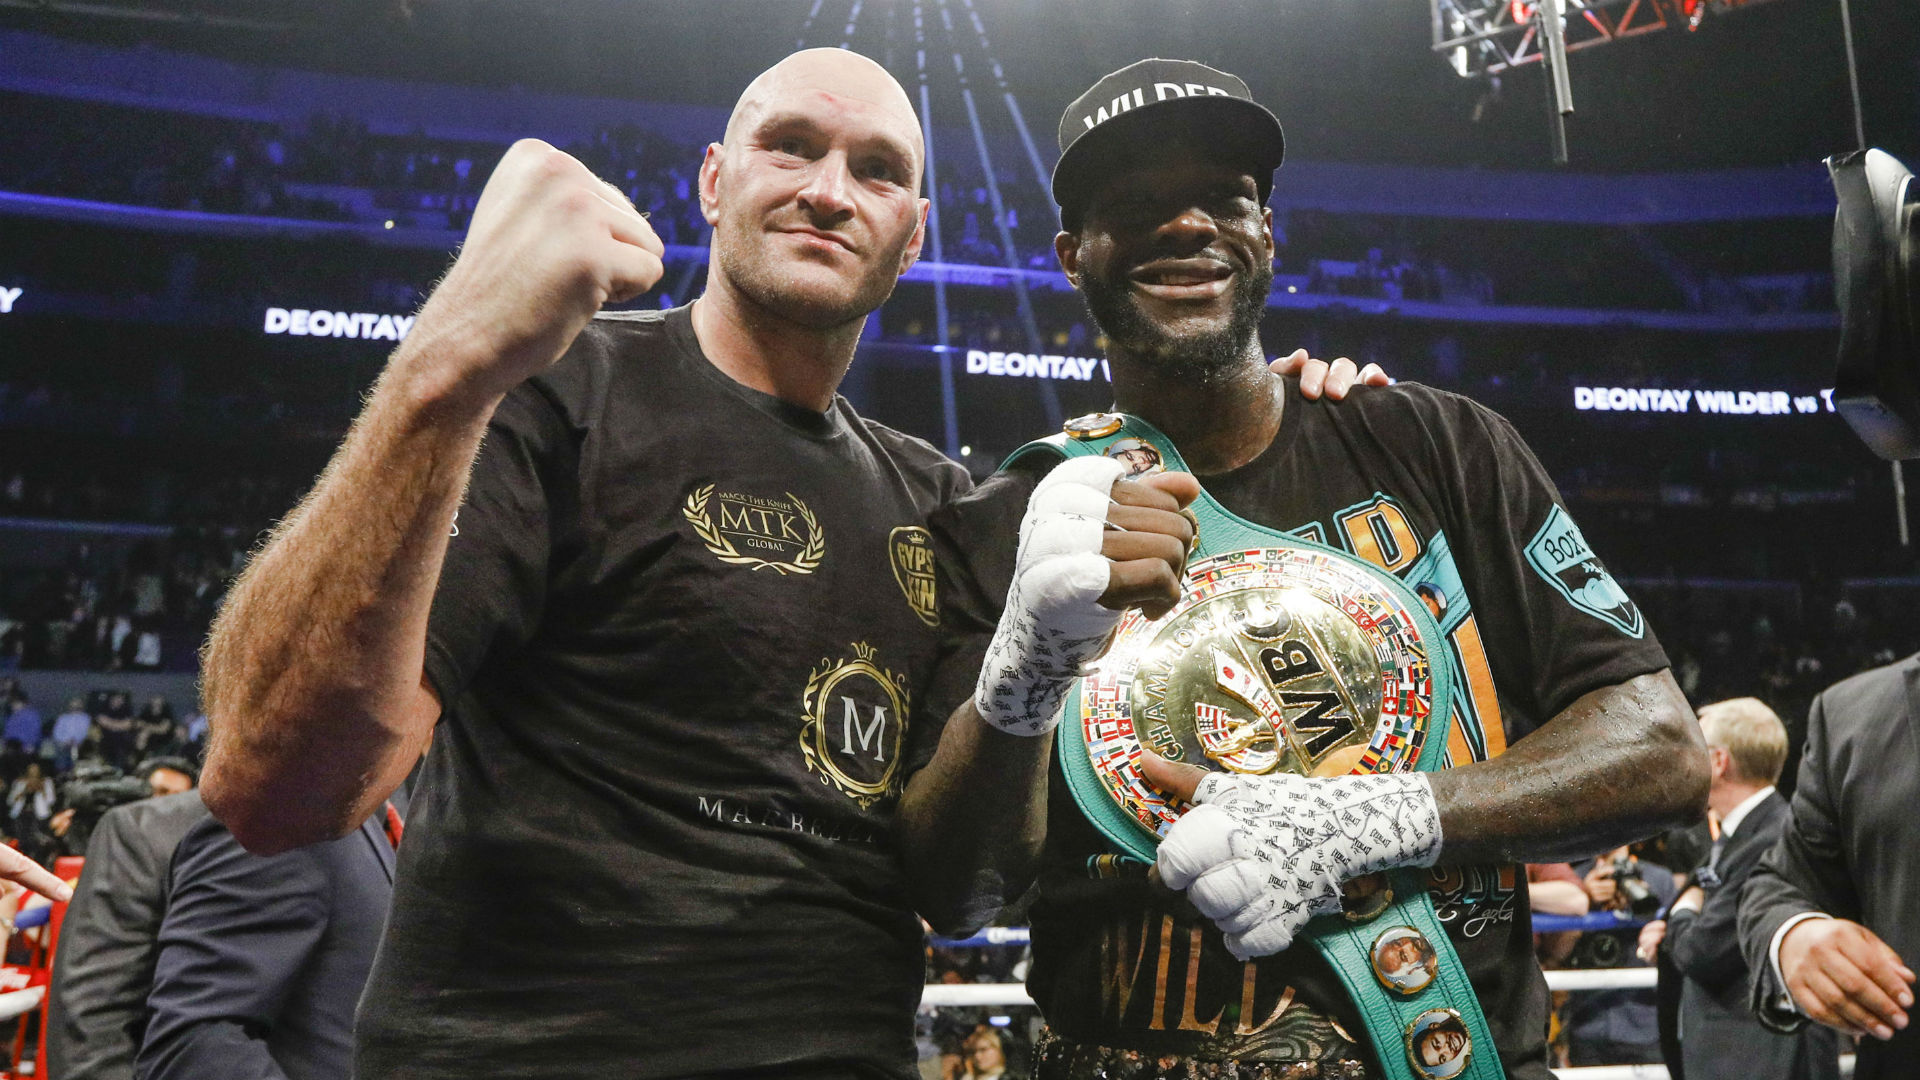 Deontay Wilder vs. Tyson Fury fight